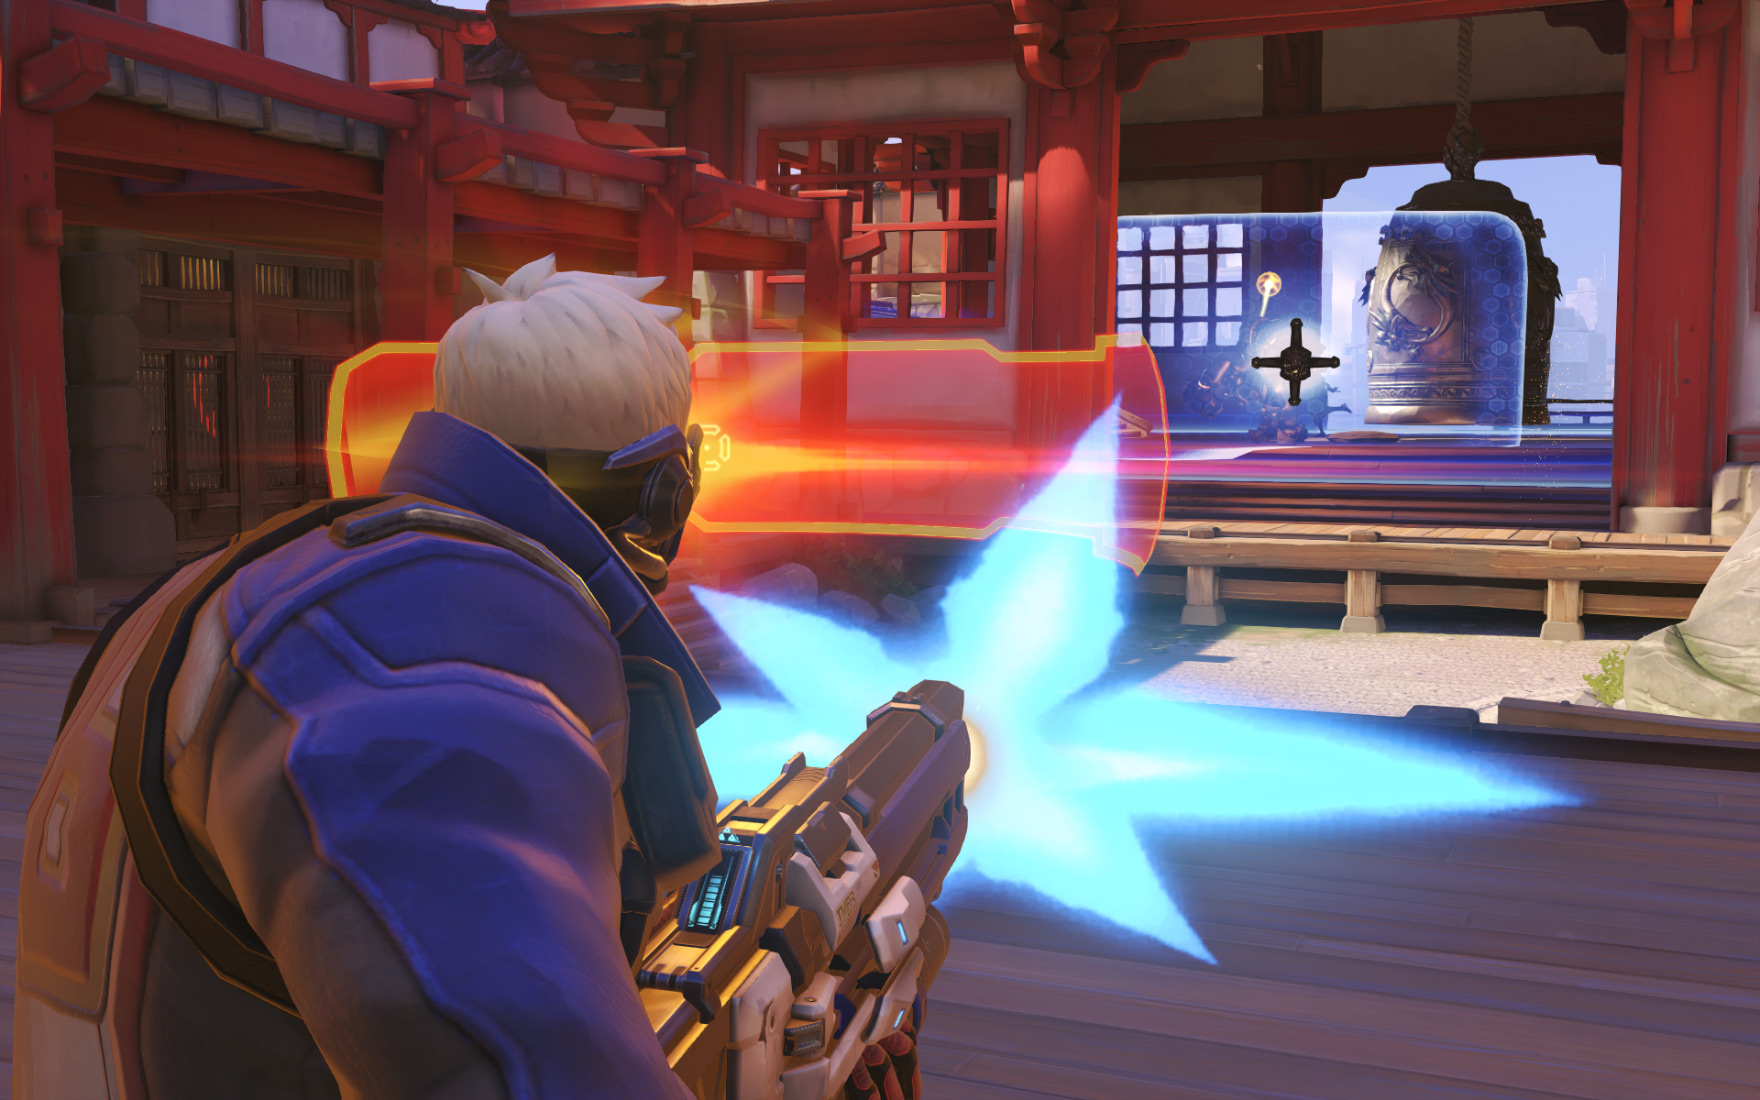 Blizzard changing the way Overwatch is played in PC bangs to curb cheating  in Korea